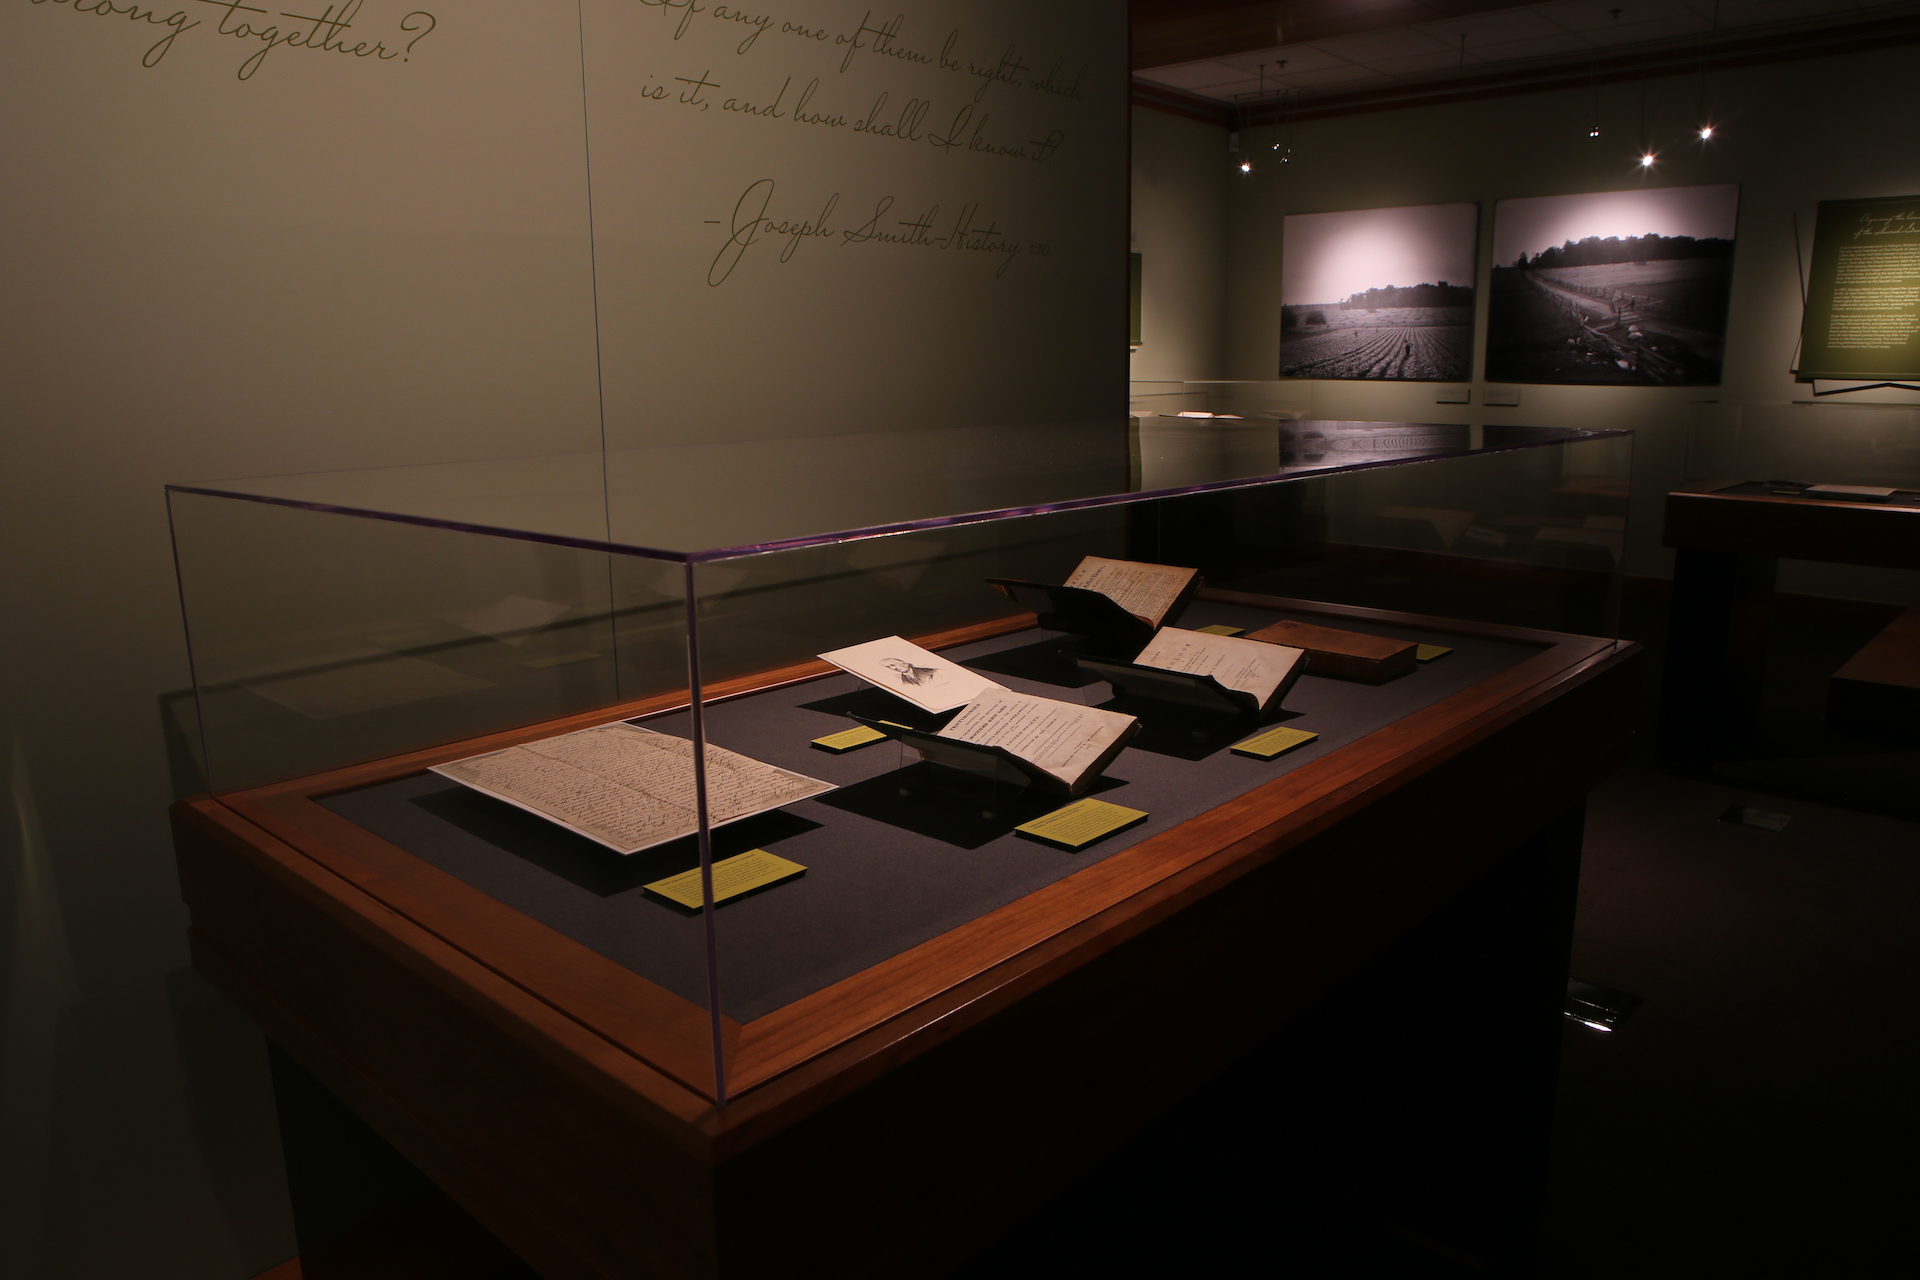 """The """"Pillar of Light"""" exhibition at BYU includes books, manuscripts, historic photos and contemporary media to tell the essential story of Joseph Smith's First Vision in 1820."""